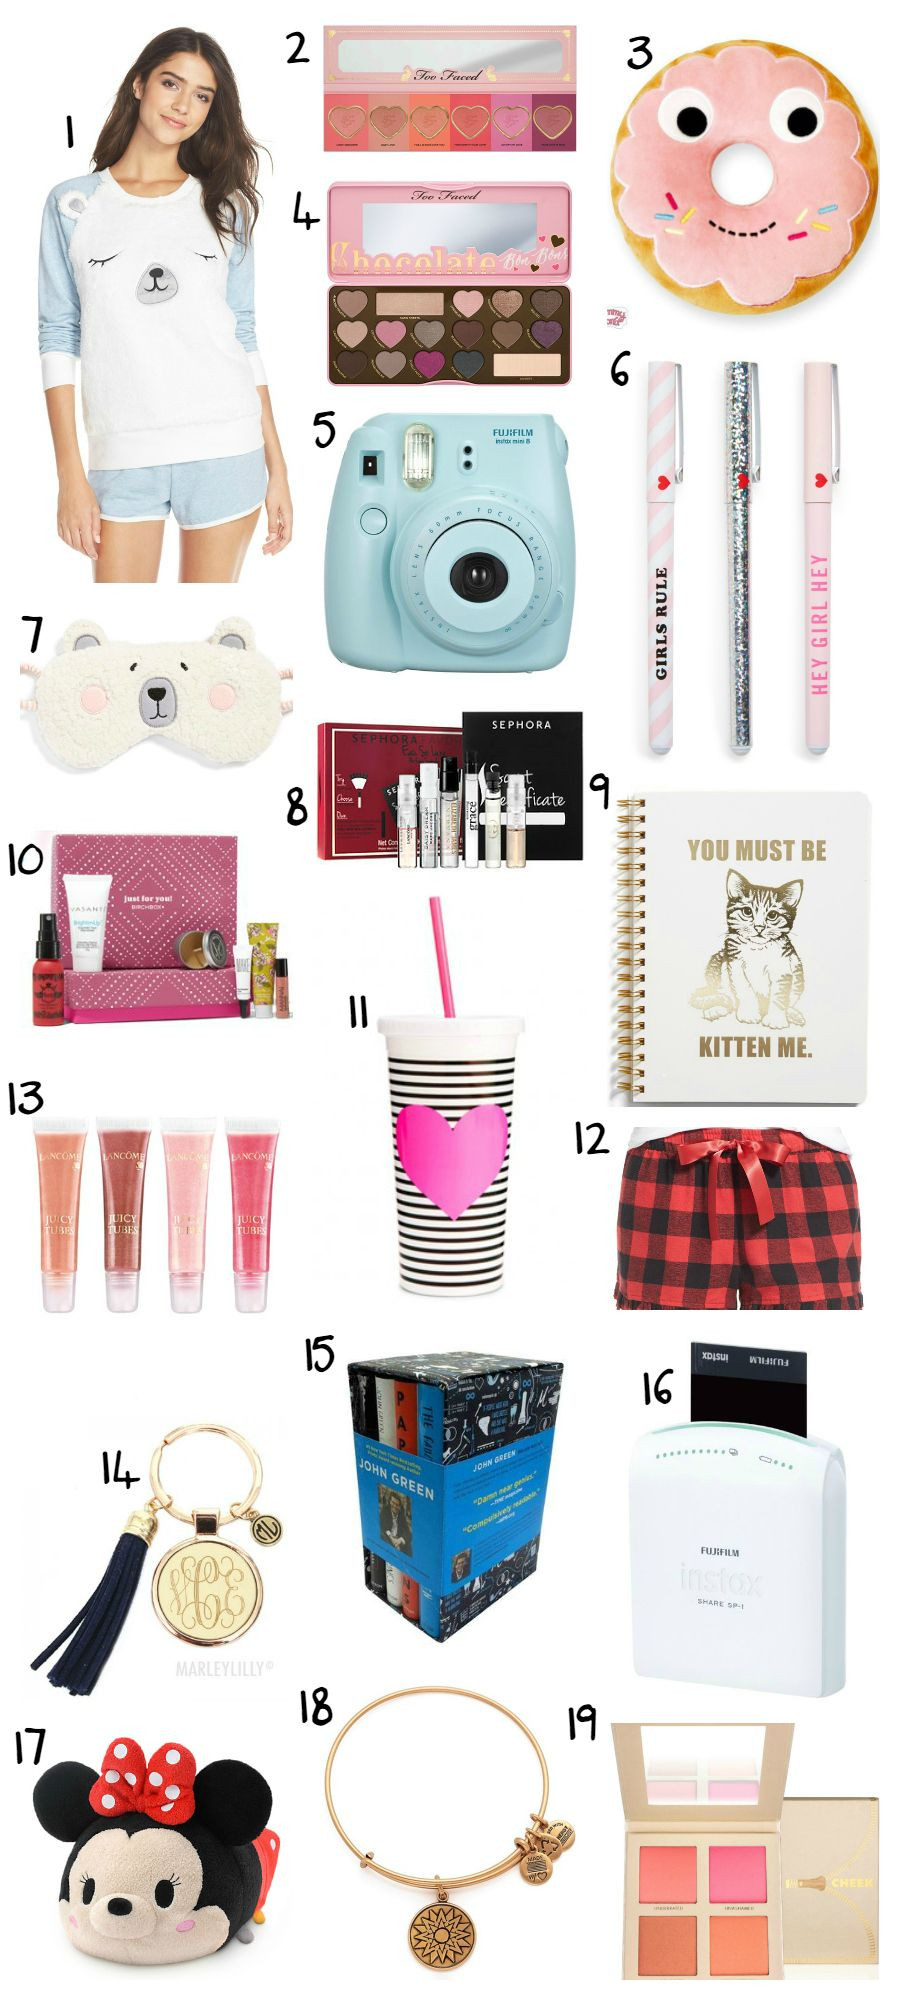 Best ideas about Gift Ideas For Teenage Girls . Save or Pin This post features over 30 of the BEST Christmas t Now.